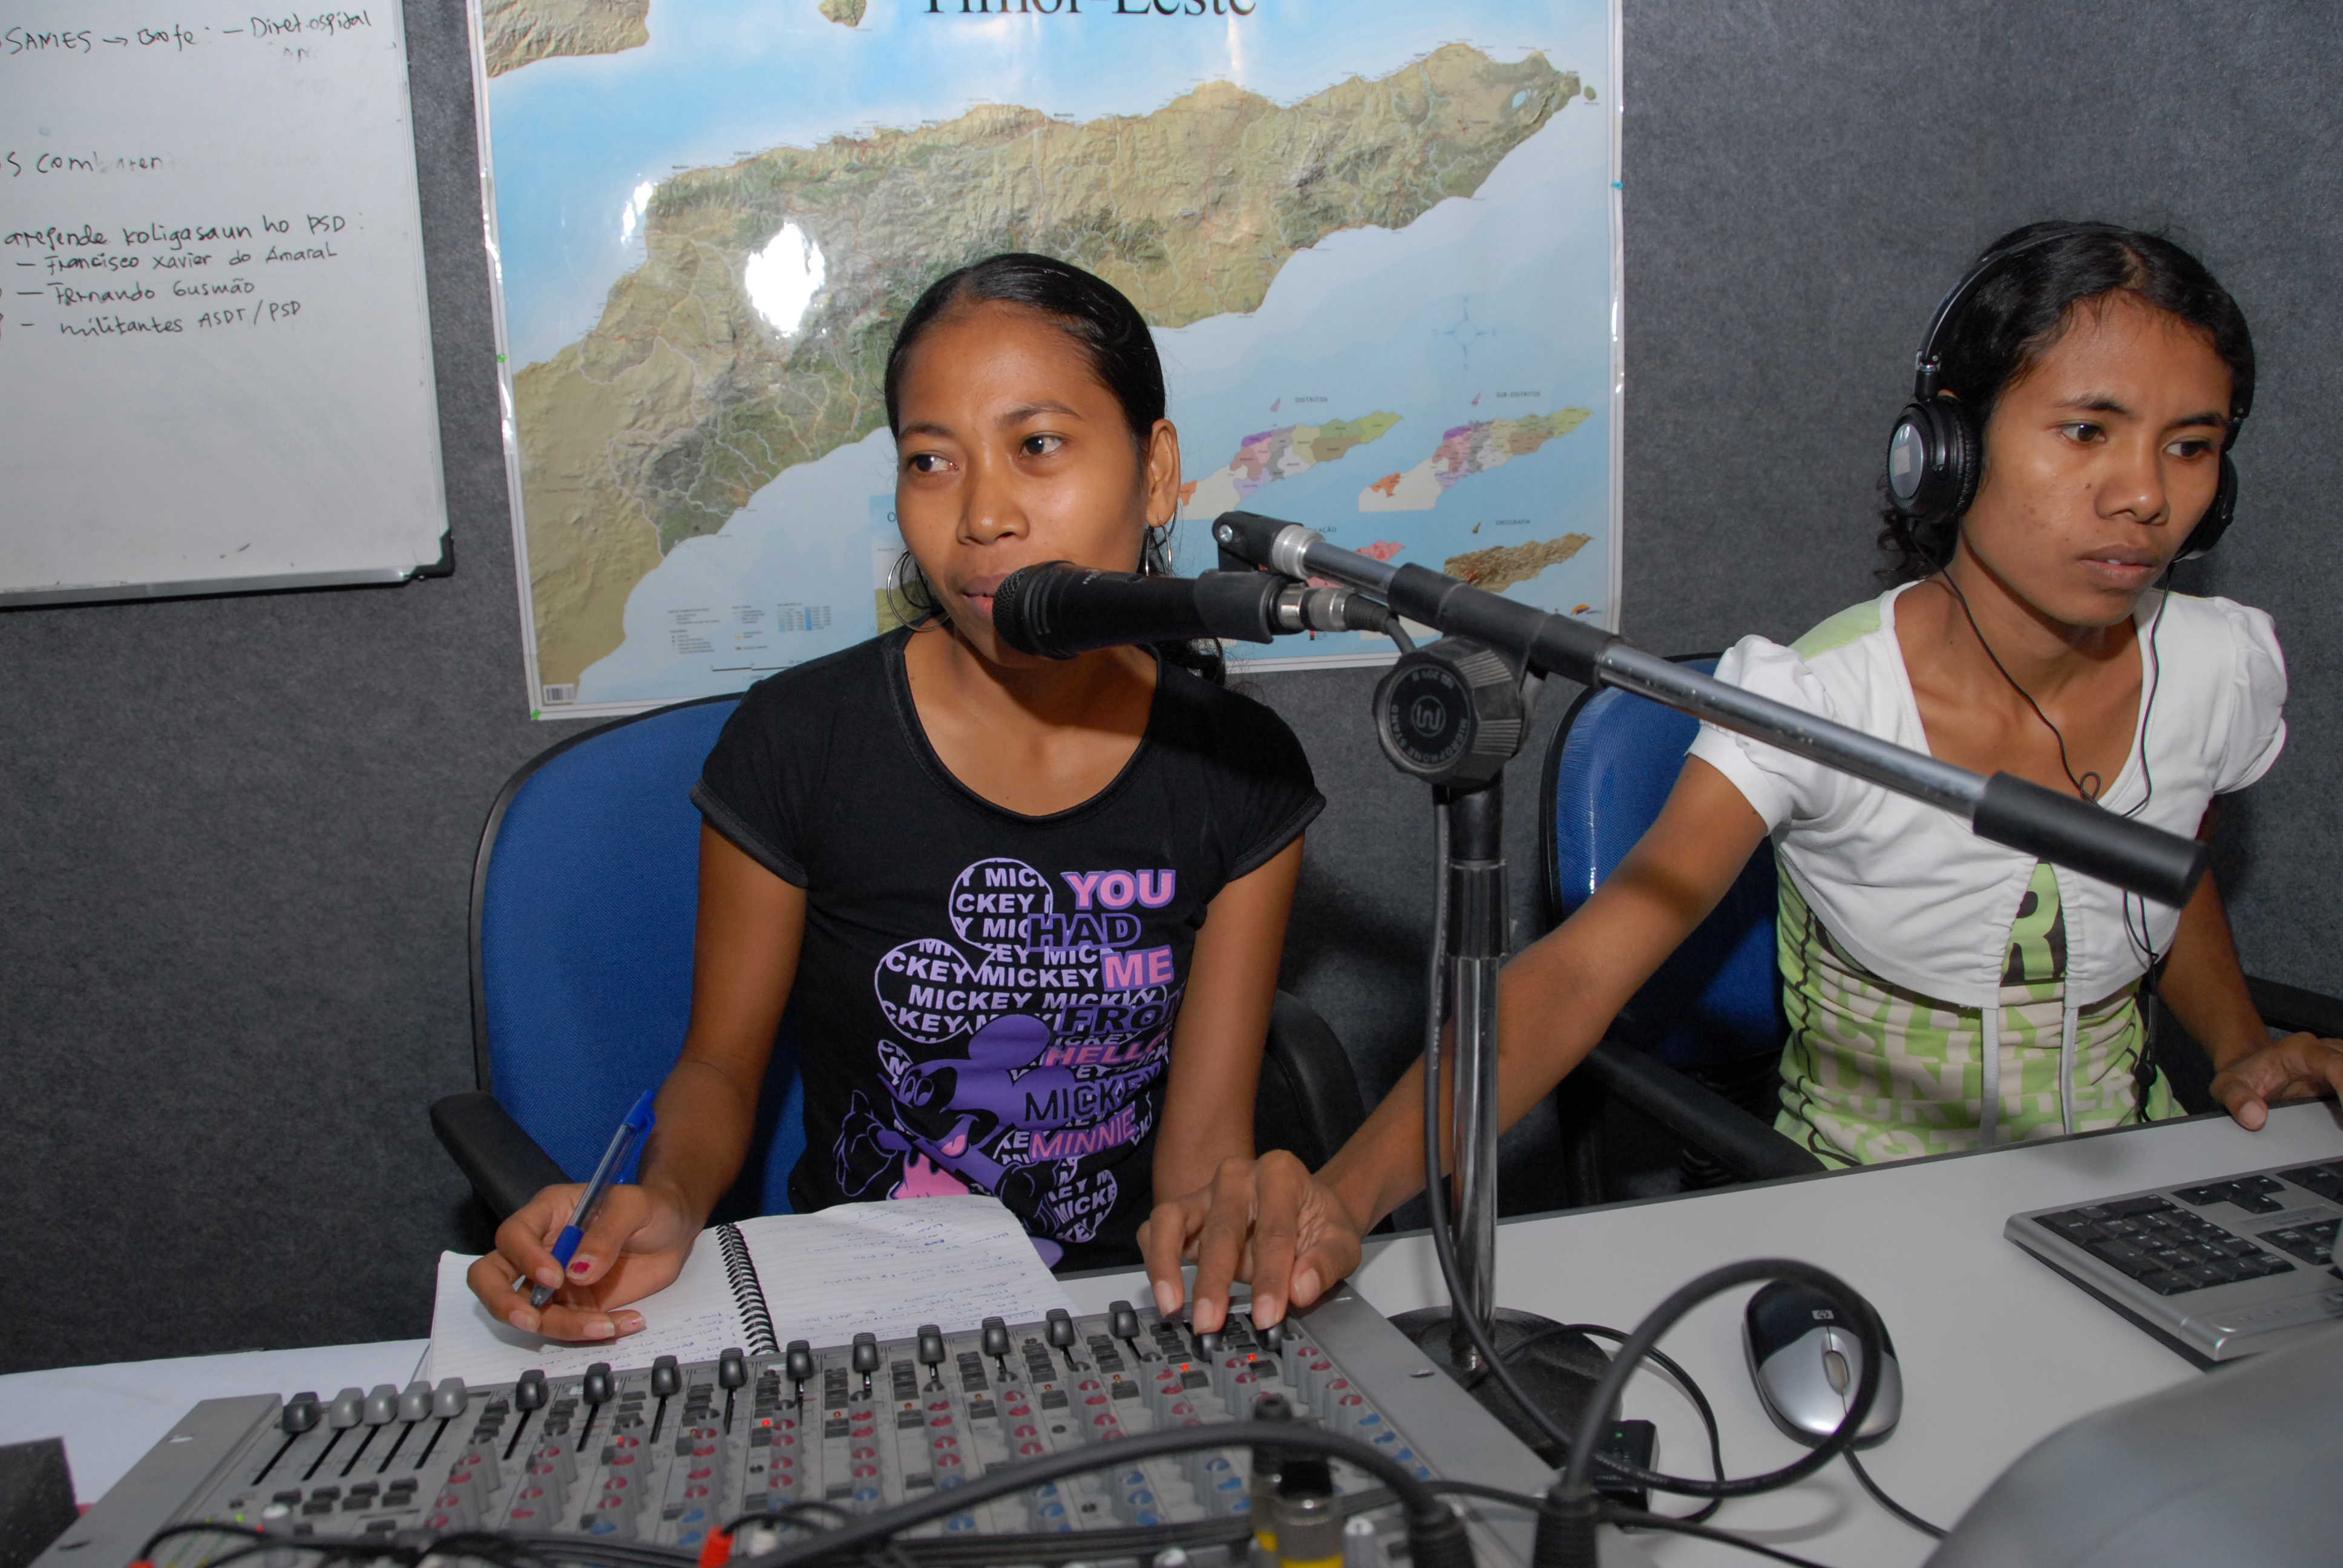 At the Independent Centre for Journalism, young East Timorese women and men participate in education and training courses to produce quality news stories. Photo by J. Vas for DFAT.